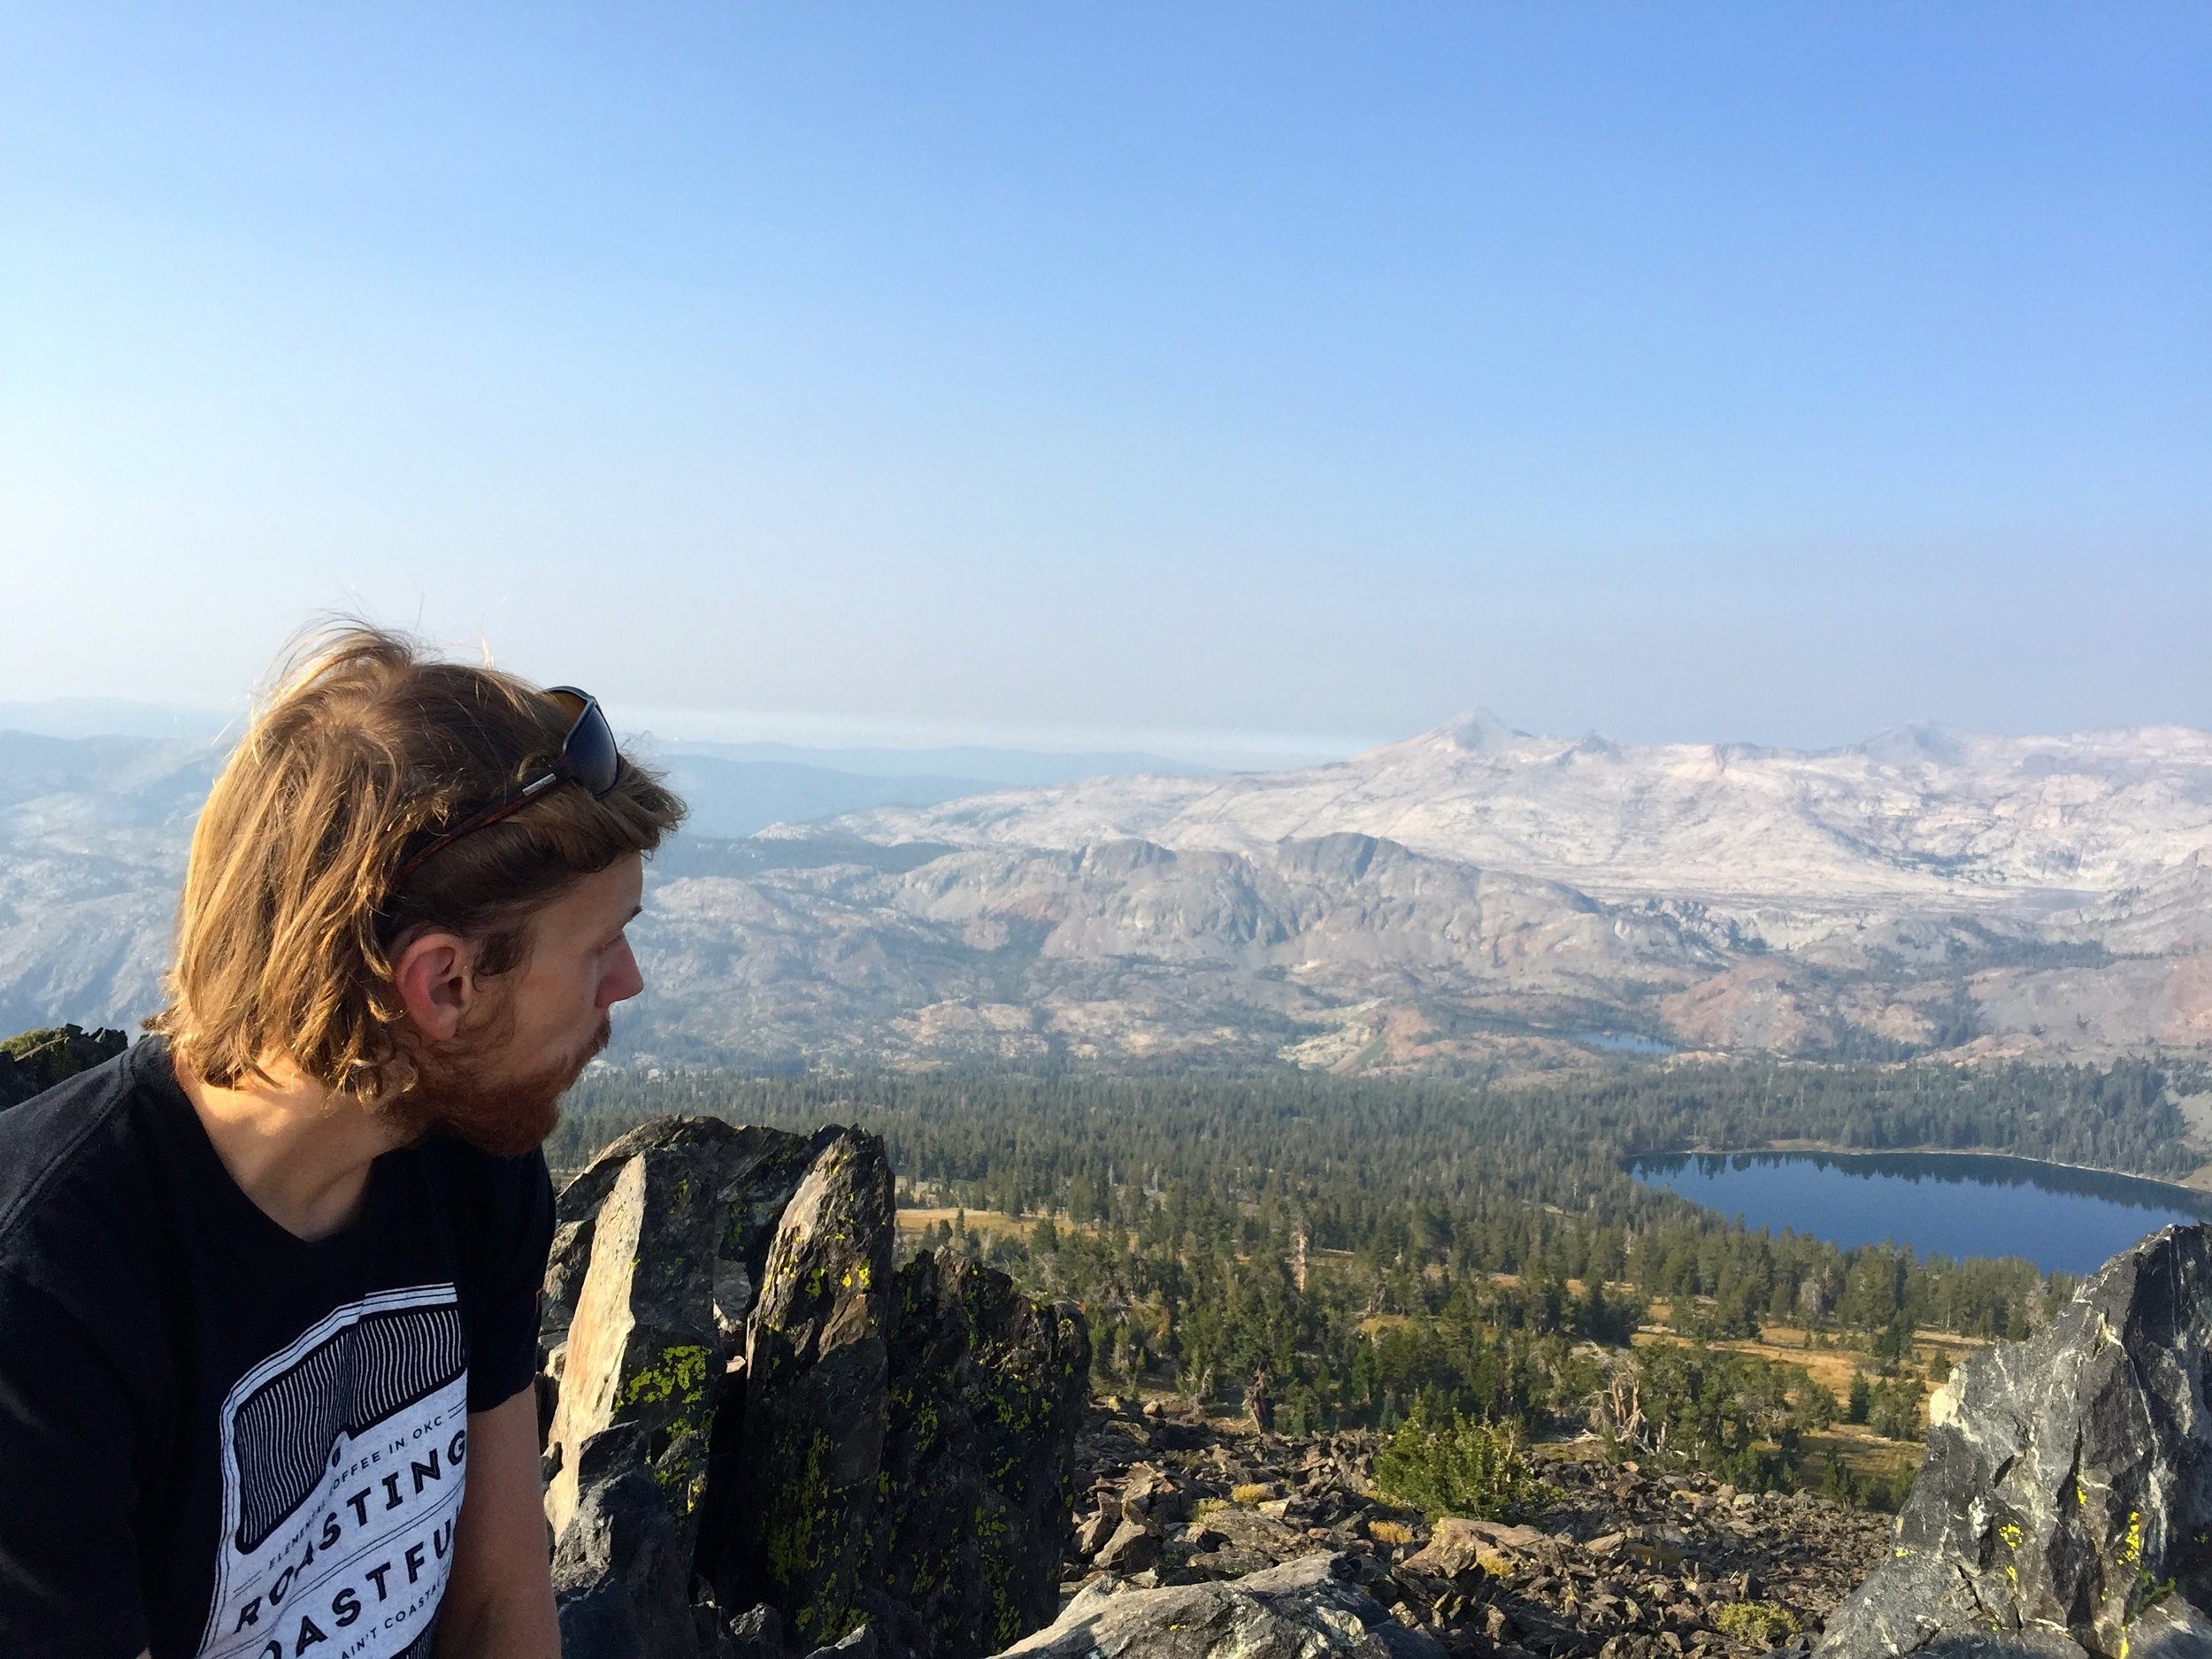 The summit of Mt. Tallac, Lake Tahoe CA